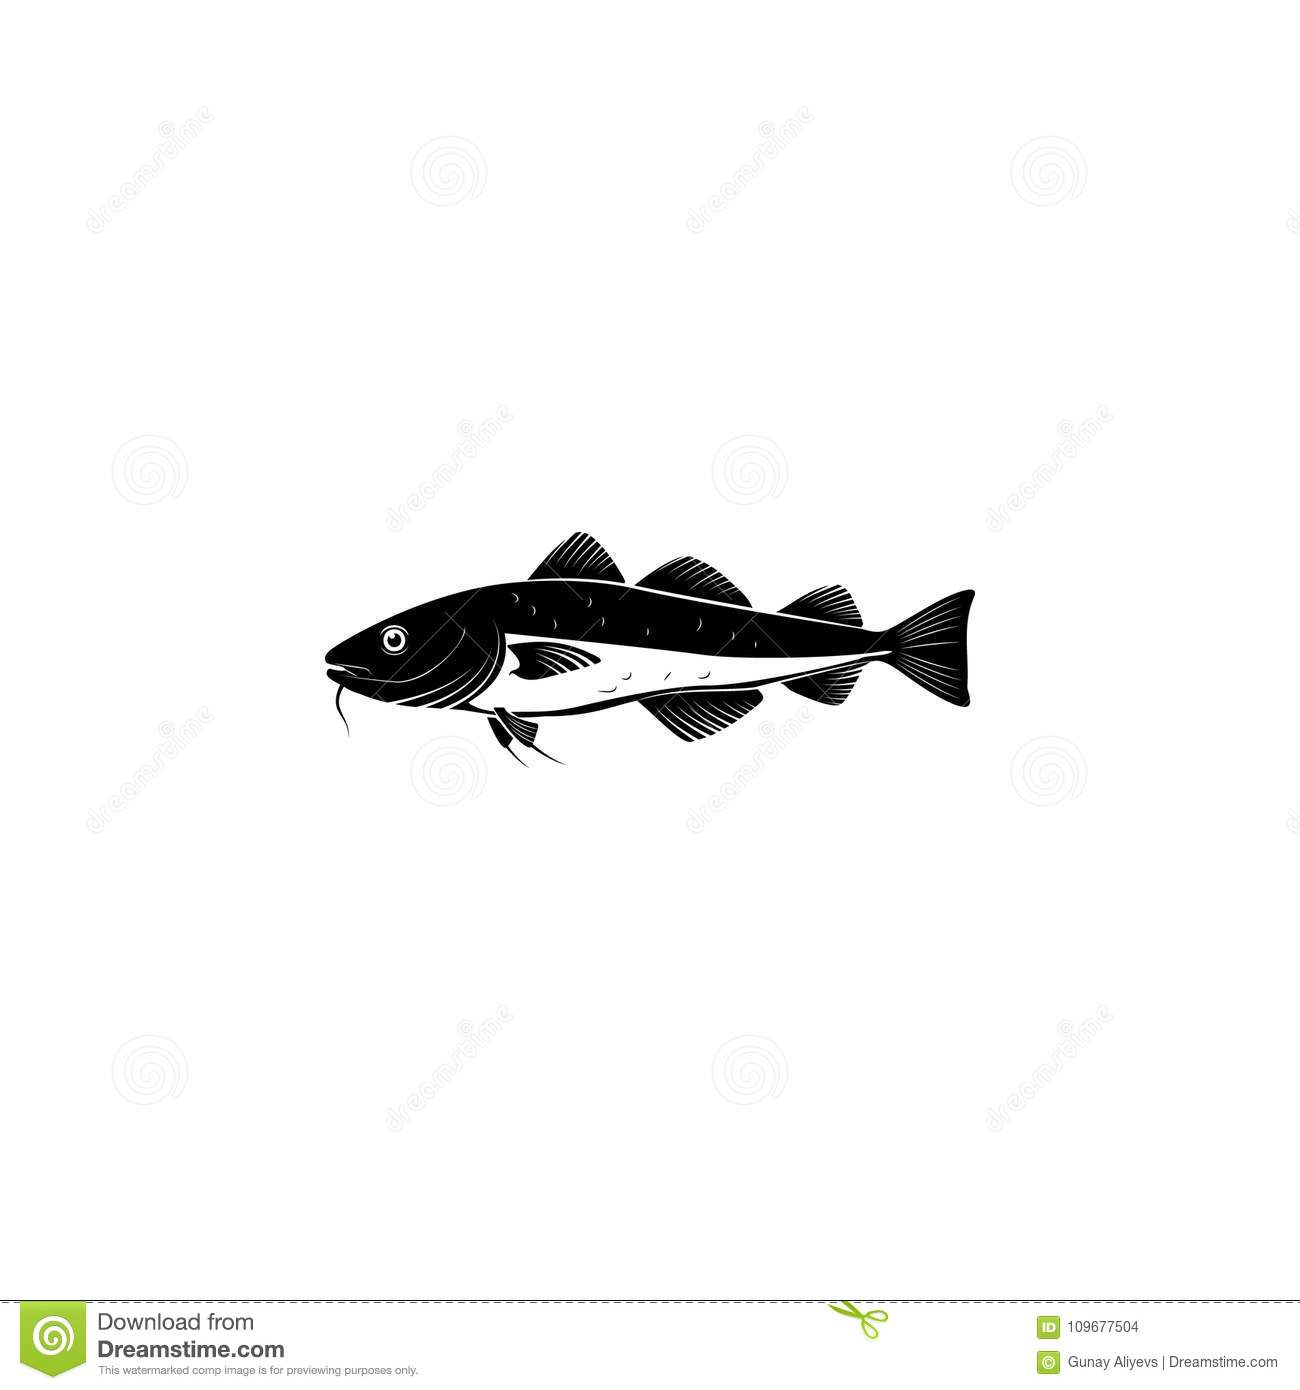 Fish in the sea app